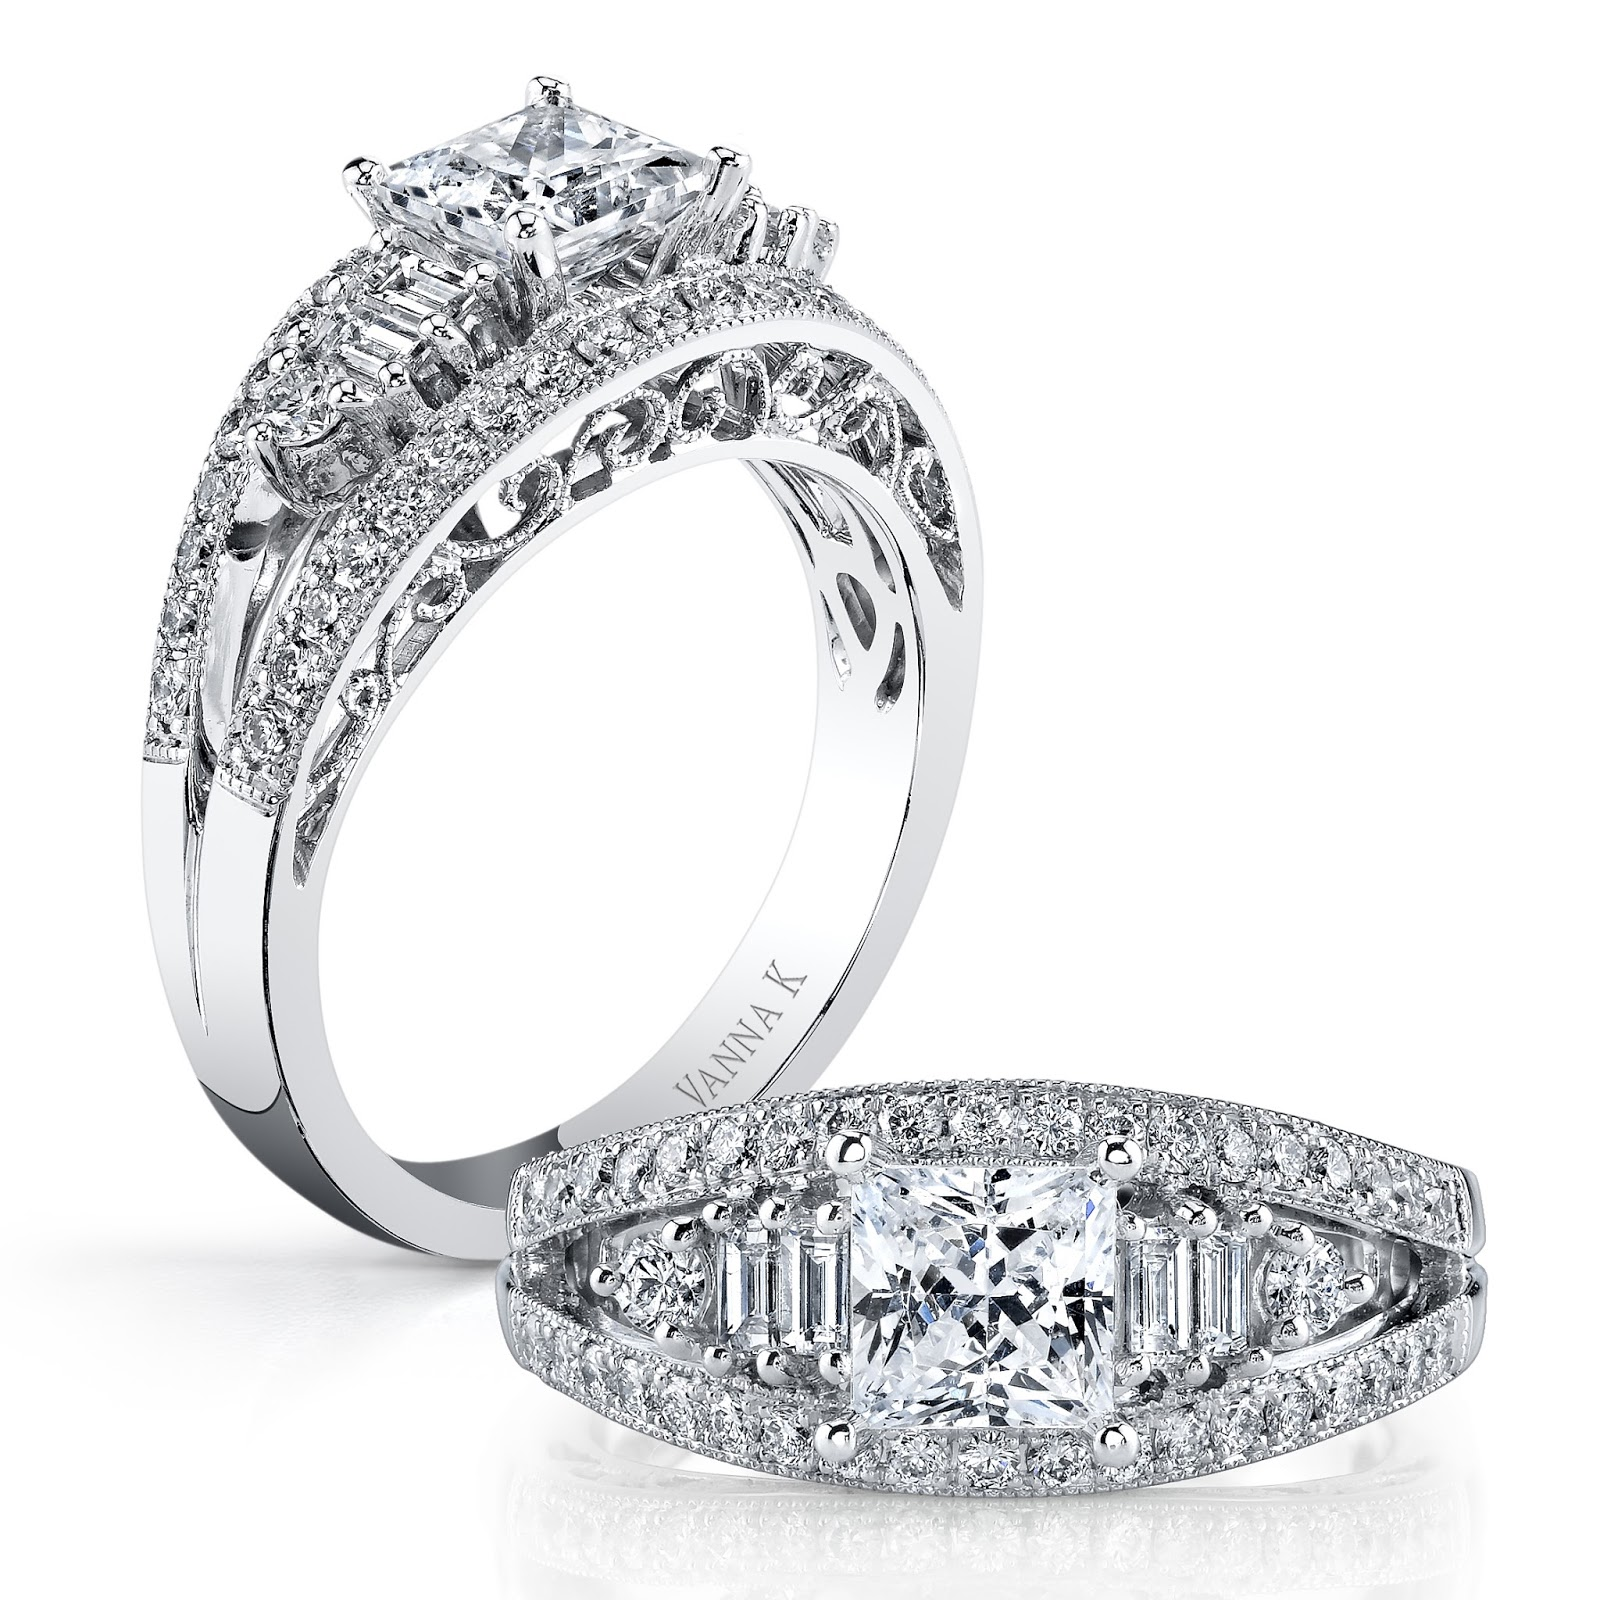 Most Beautiful Wedding Ring 99 Best Another gorgeous ring below